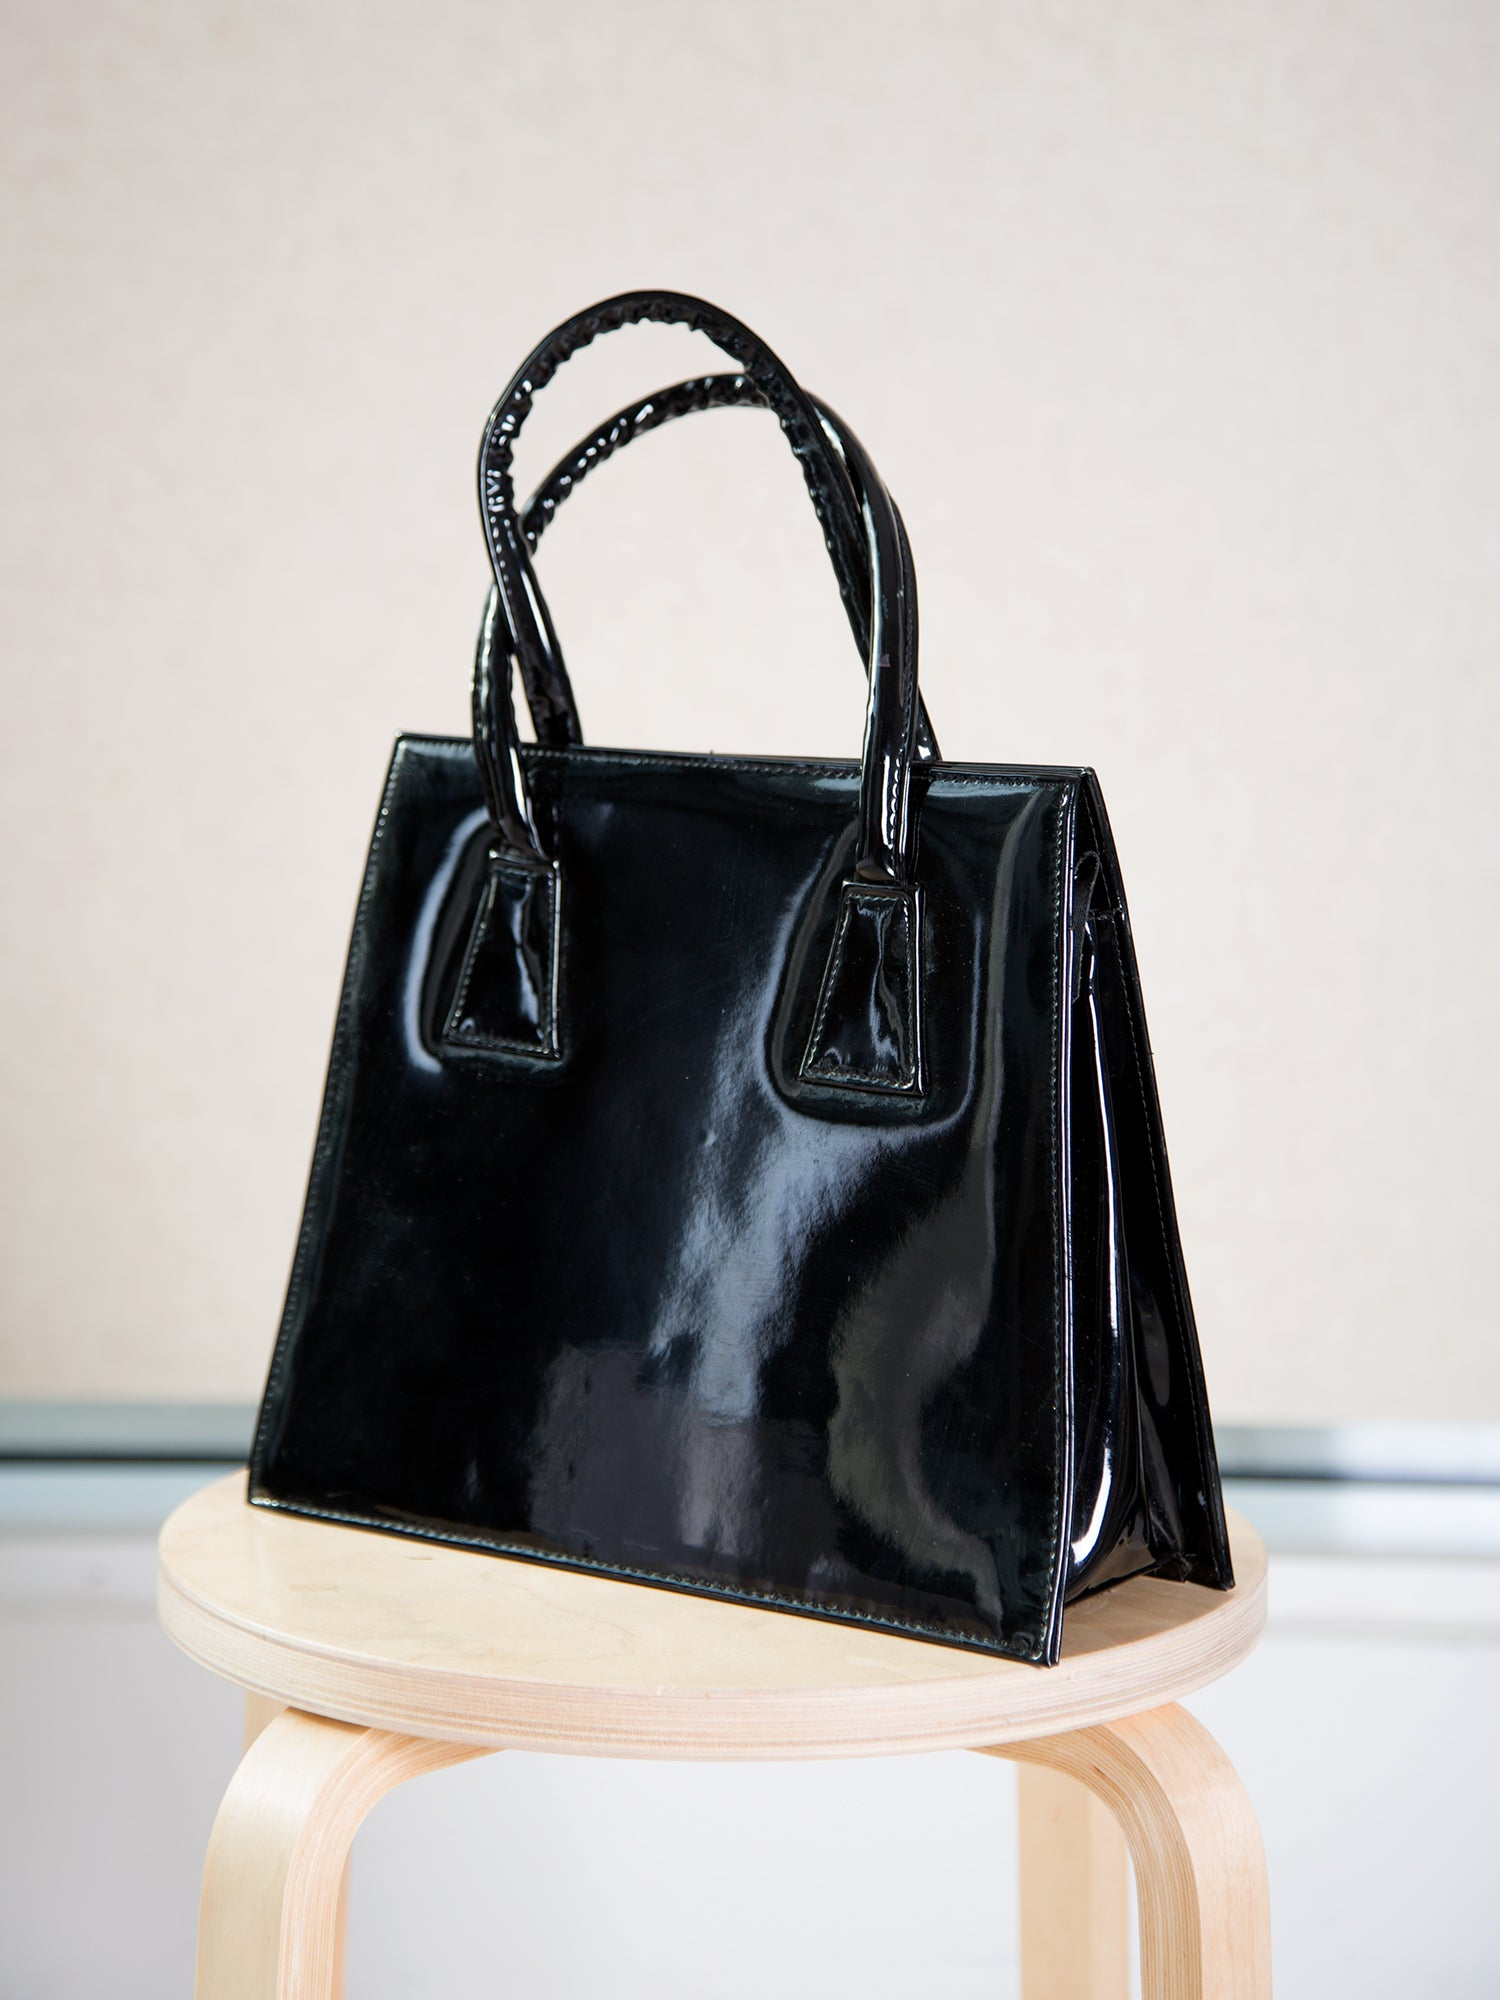 A vintage 1970s black patent top-handle bag